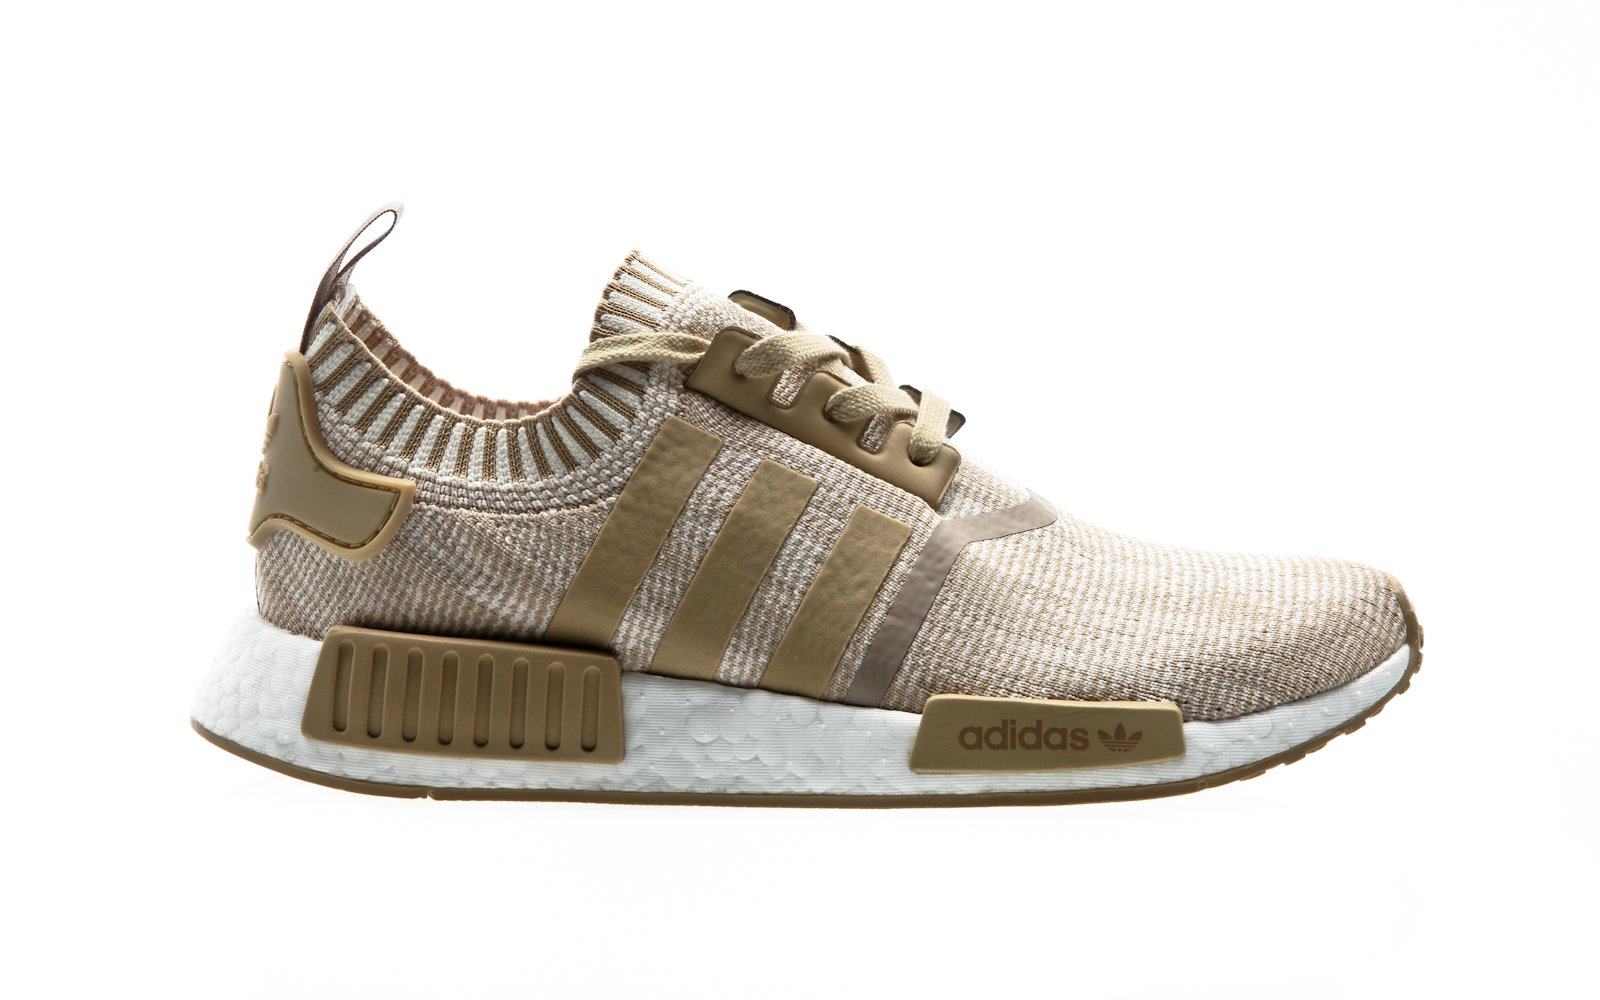 6dce12366 Galleon - Adidas Originals NMD R1 PK Mens Running Trainers Sneakers Shoes  Prime Knit (UK 5.5 US 6 EU 38 2 3